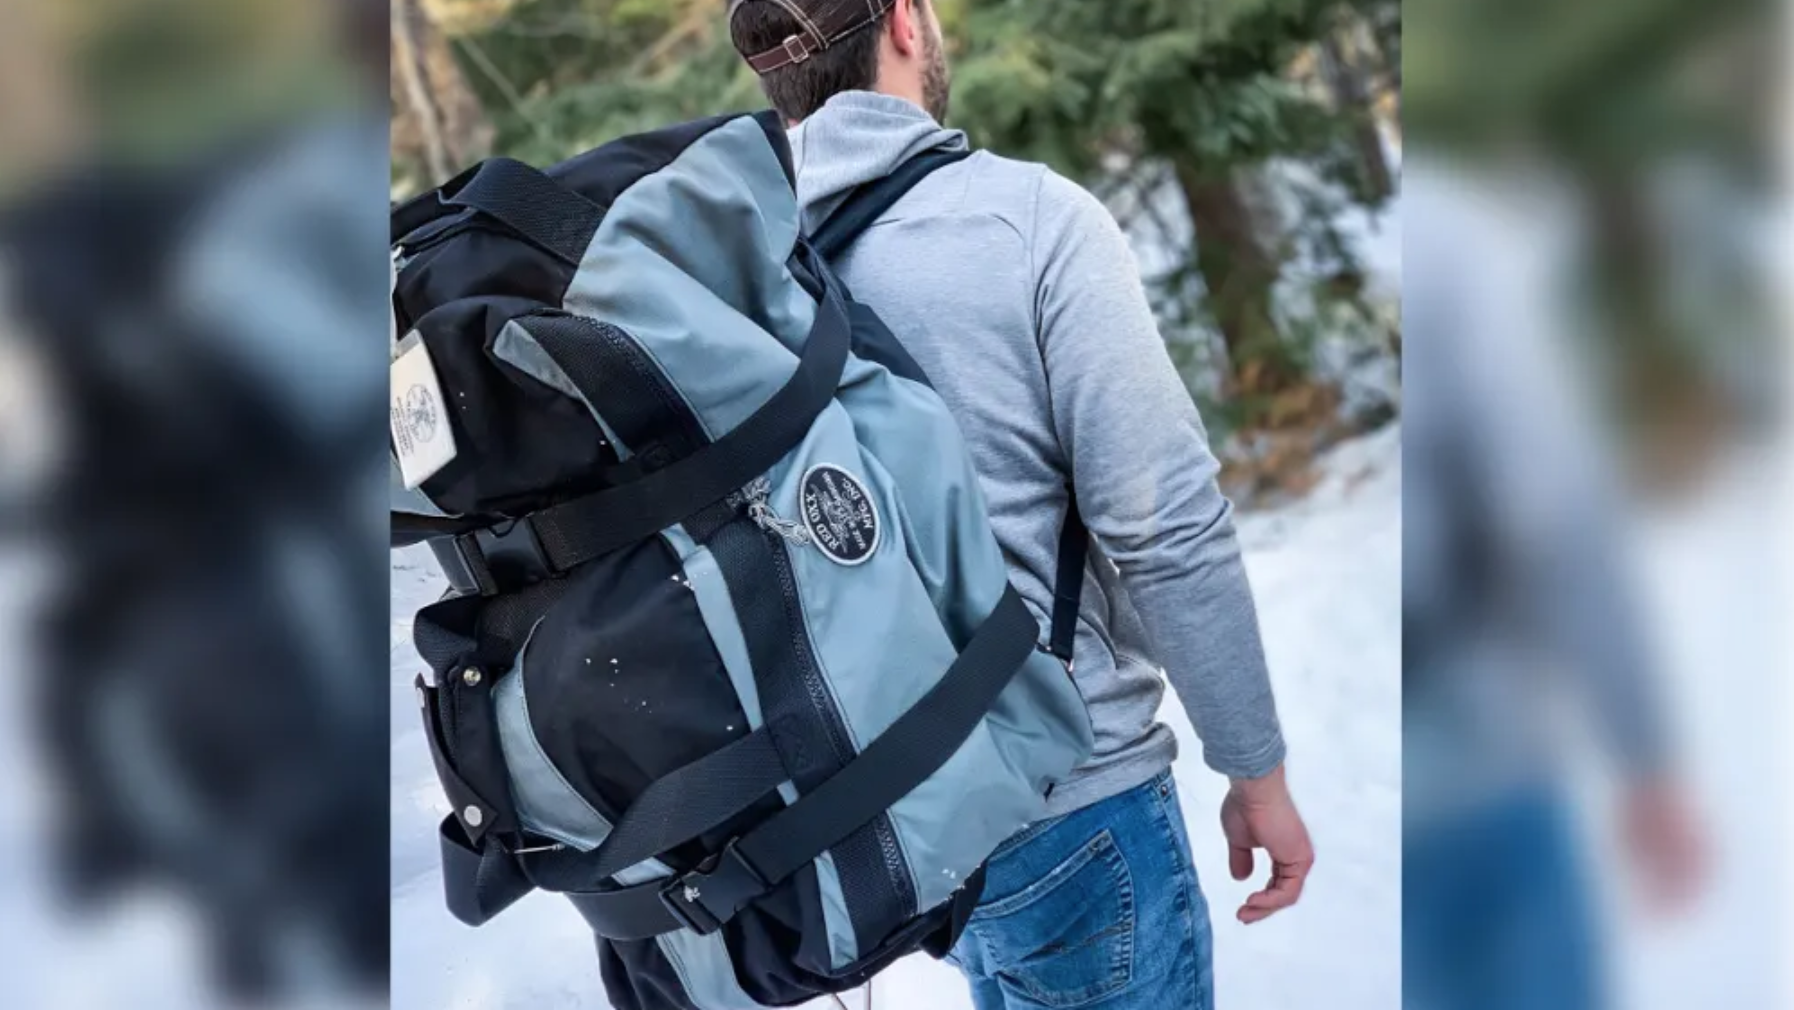 Review: Red Oxx Sherpa Jr. Expedition Bag